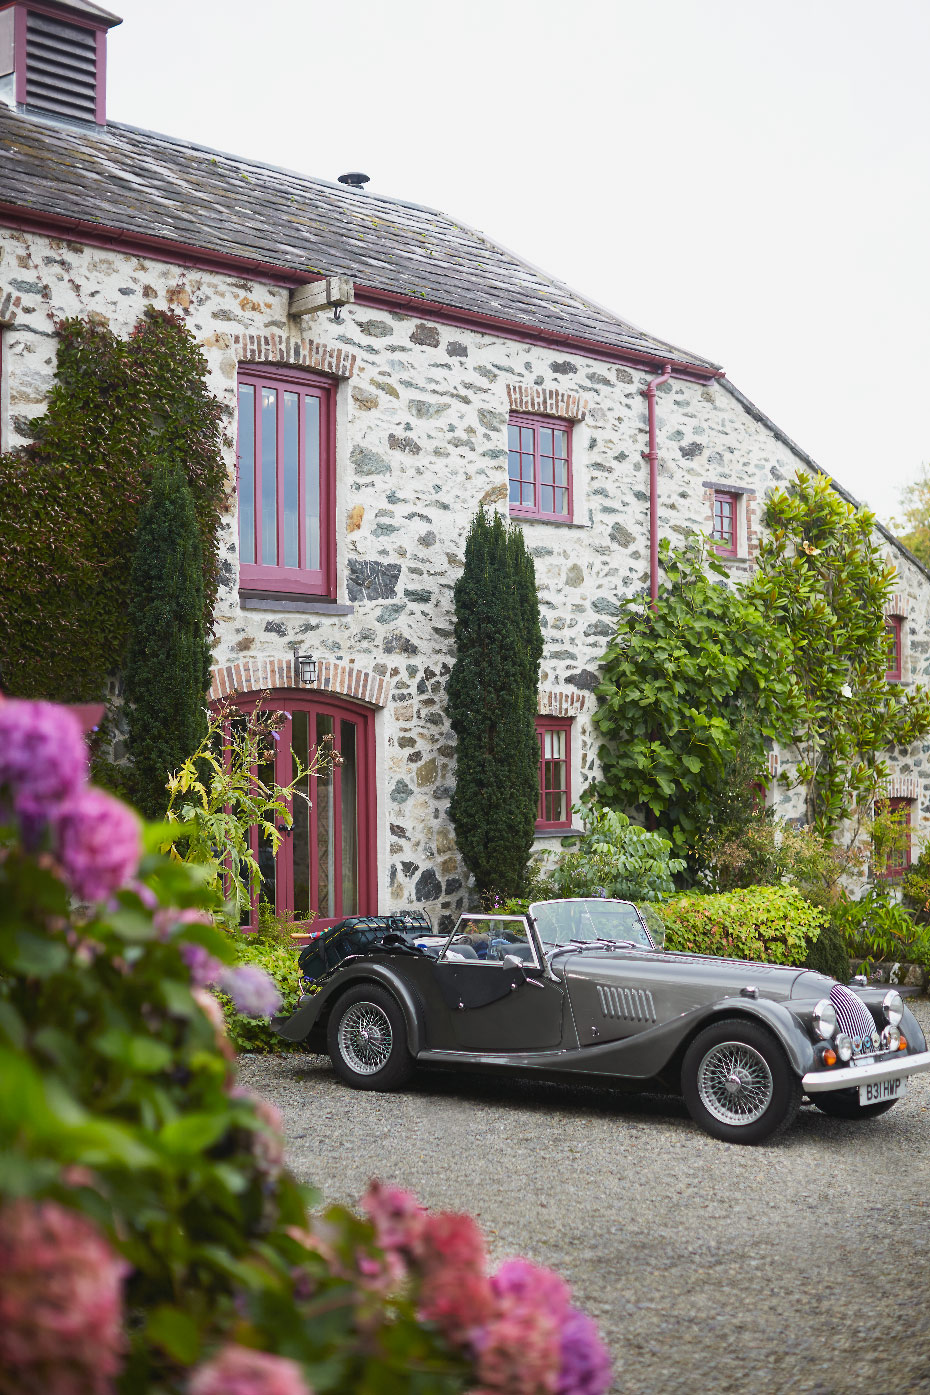 Stacey Van Berkel Photography I Bespoke British Car parked at picturesque Bed & Breakfast I Plas Cadnant, Anglesey, Wales